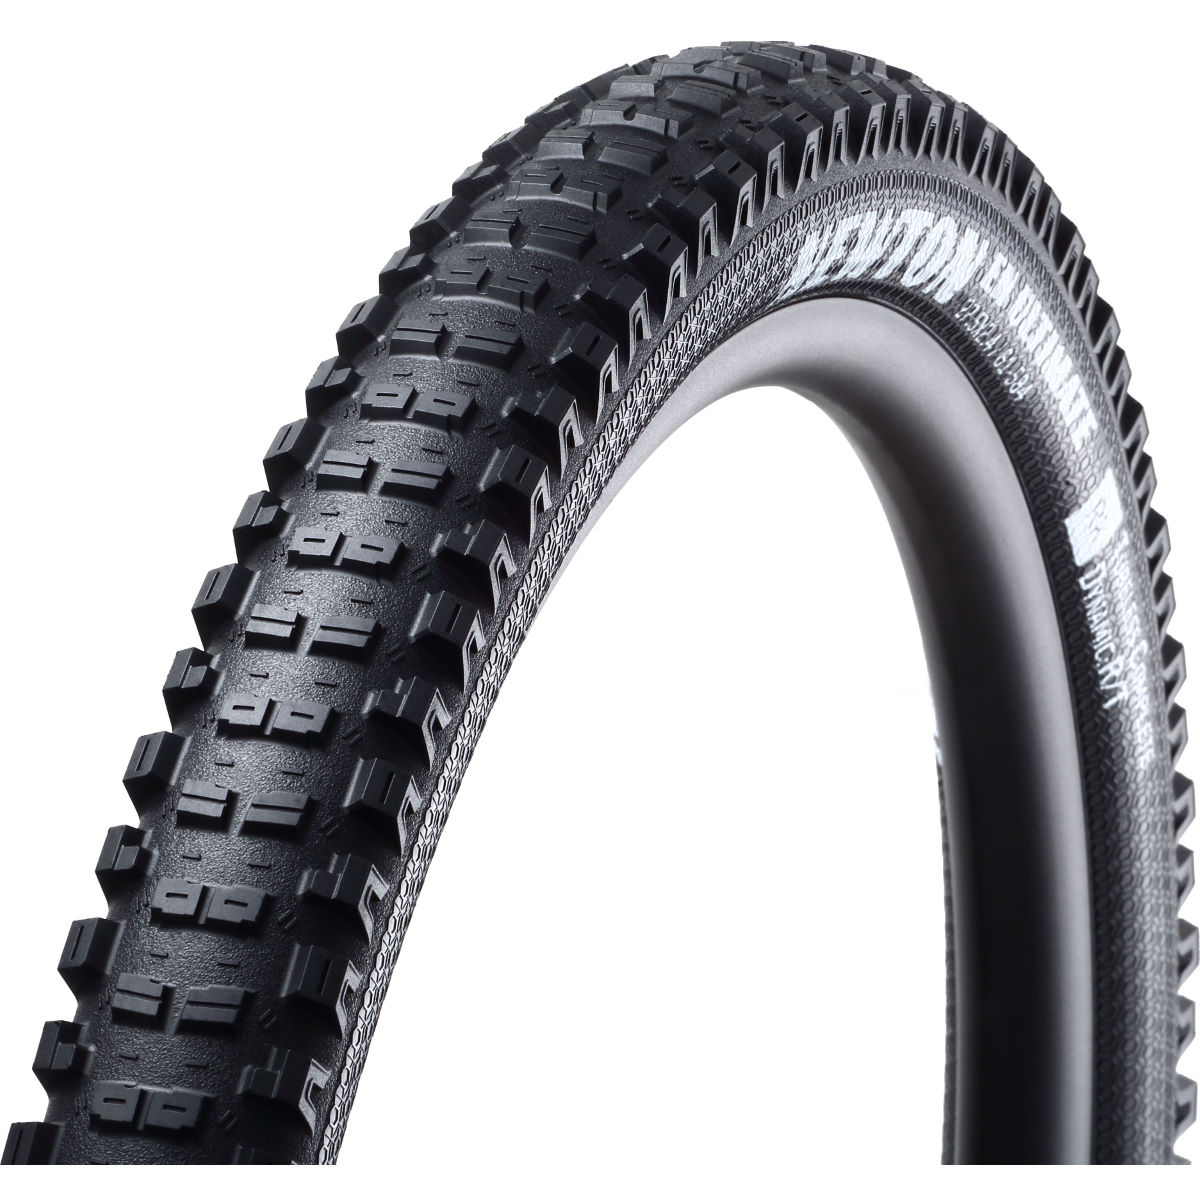 Newton EN Ultimate Tubeless MTB Tyre   Tyres